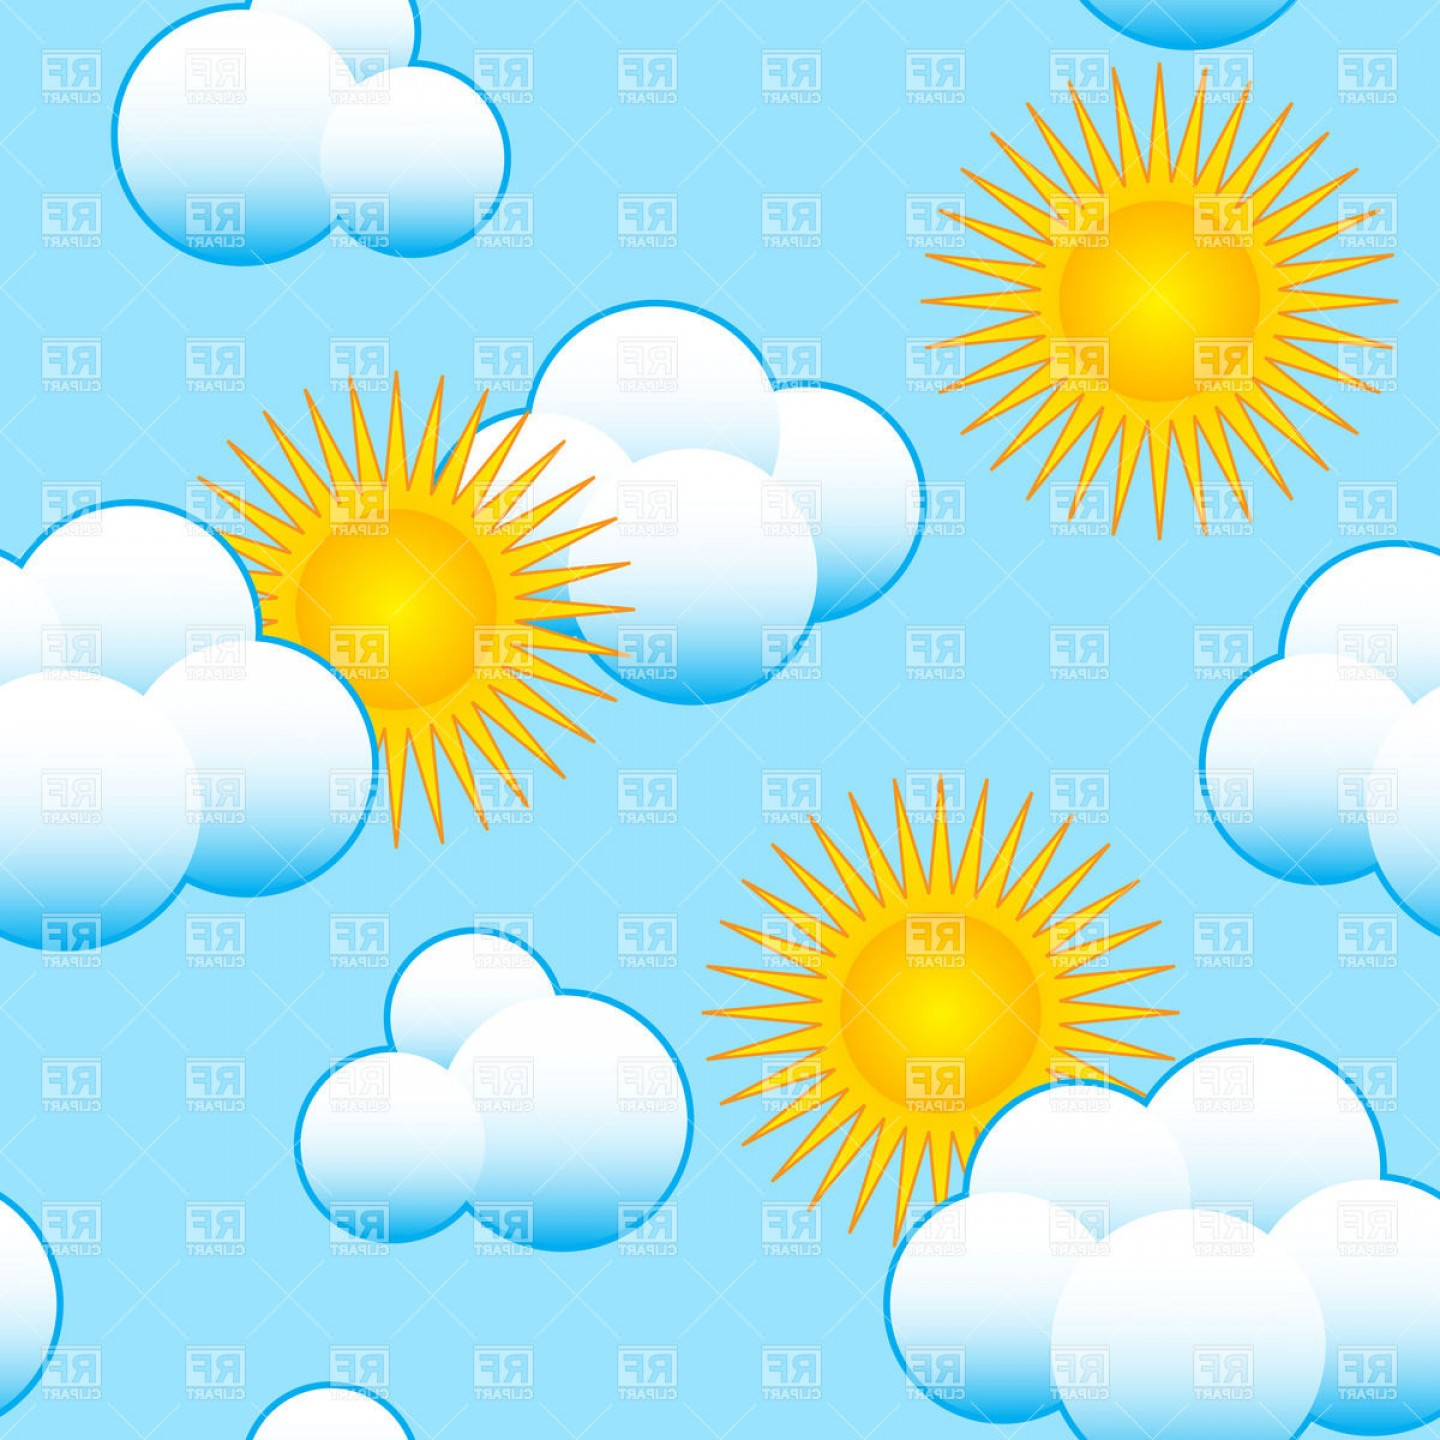 Blue Background Vector Cartoon Sun: Seamless Background With Cartoon Sun And Clouds Vector Clipart